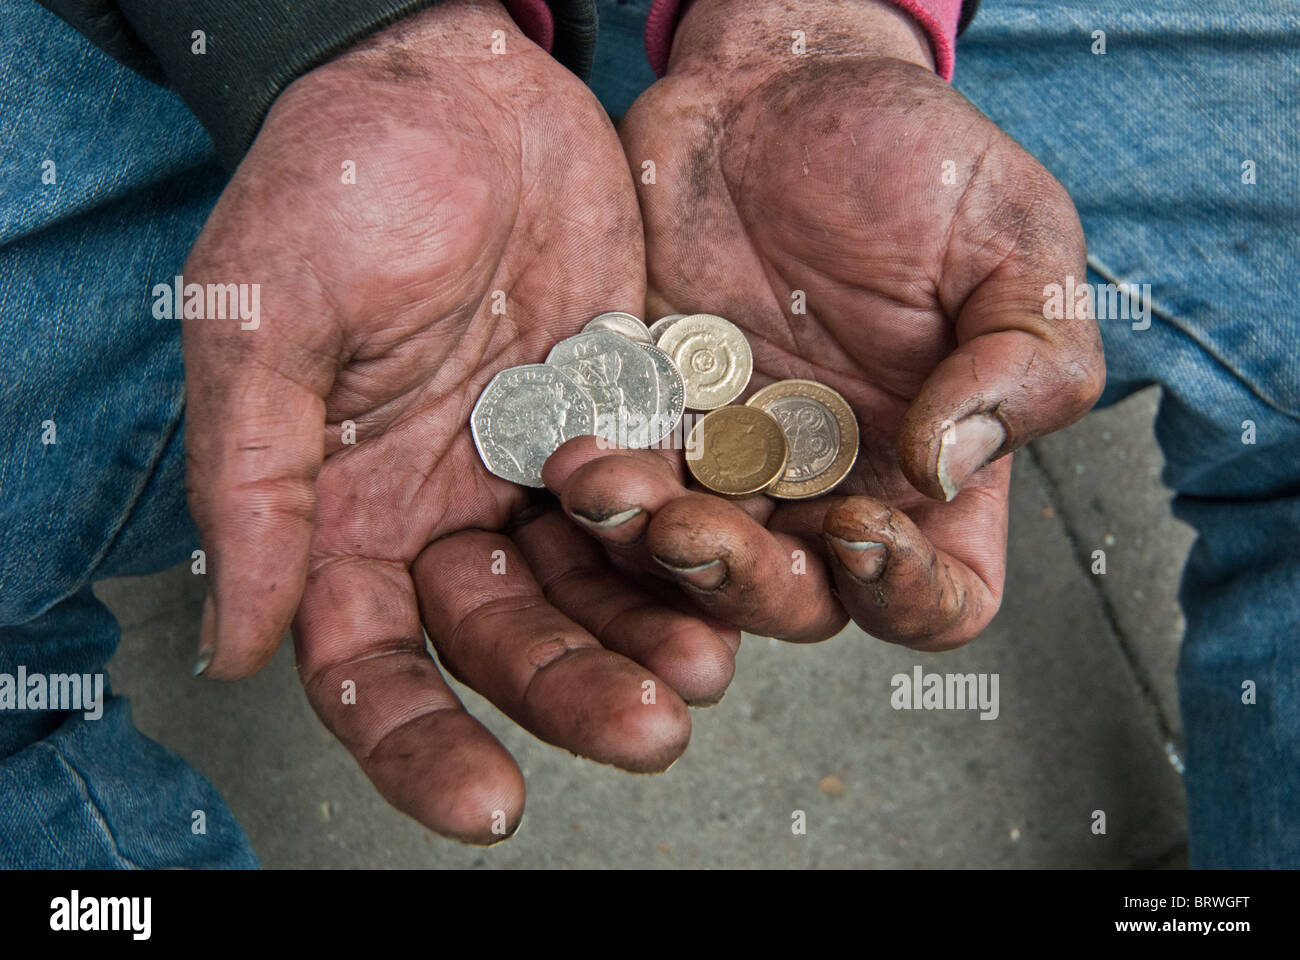 HOMELESS PERSON HOW MUCH CASH HE EARNED - Stock Image